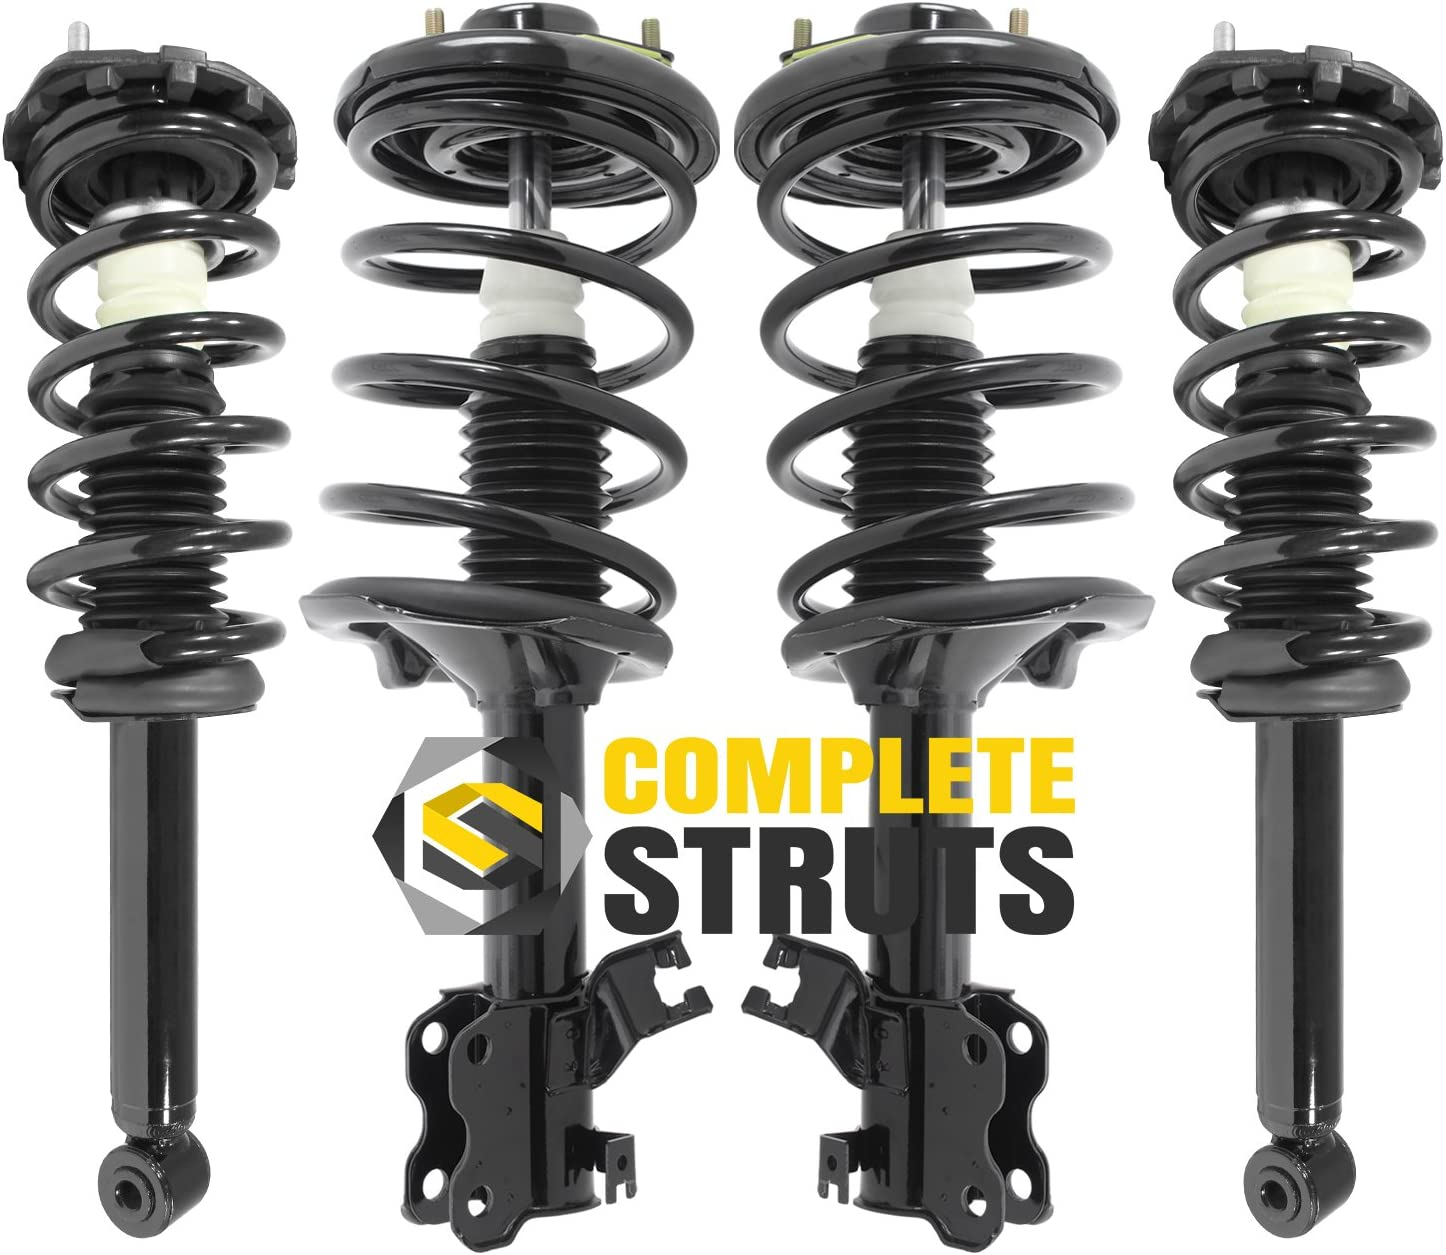 Set of 4 Front /& Rear Quick Complete Struts /& Coil Spring Assemblies Compatible with 2002-2003 Nissan Maxima